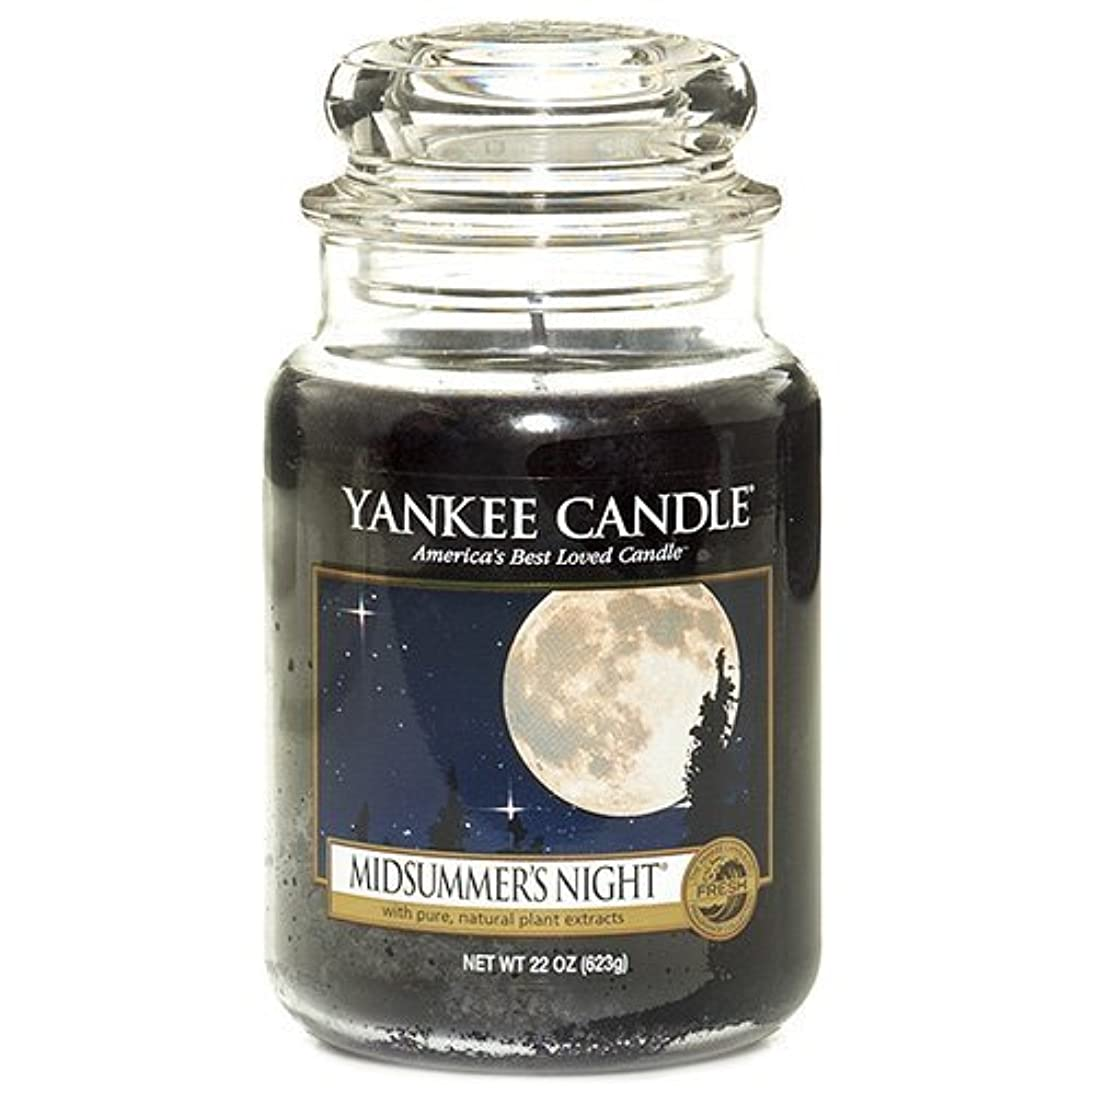 Yankee Candle Large Midsummers Night Jar Candle 115174E by Yankee Candle [並行輸入品]